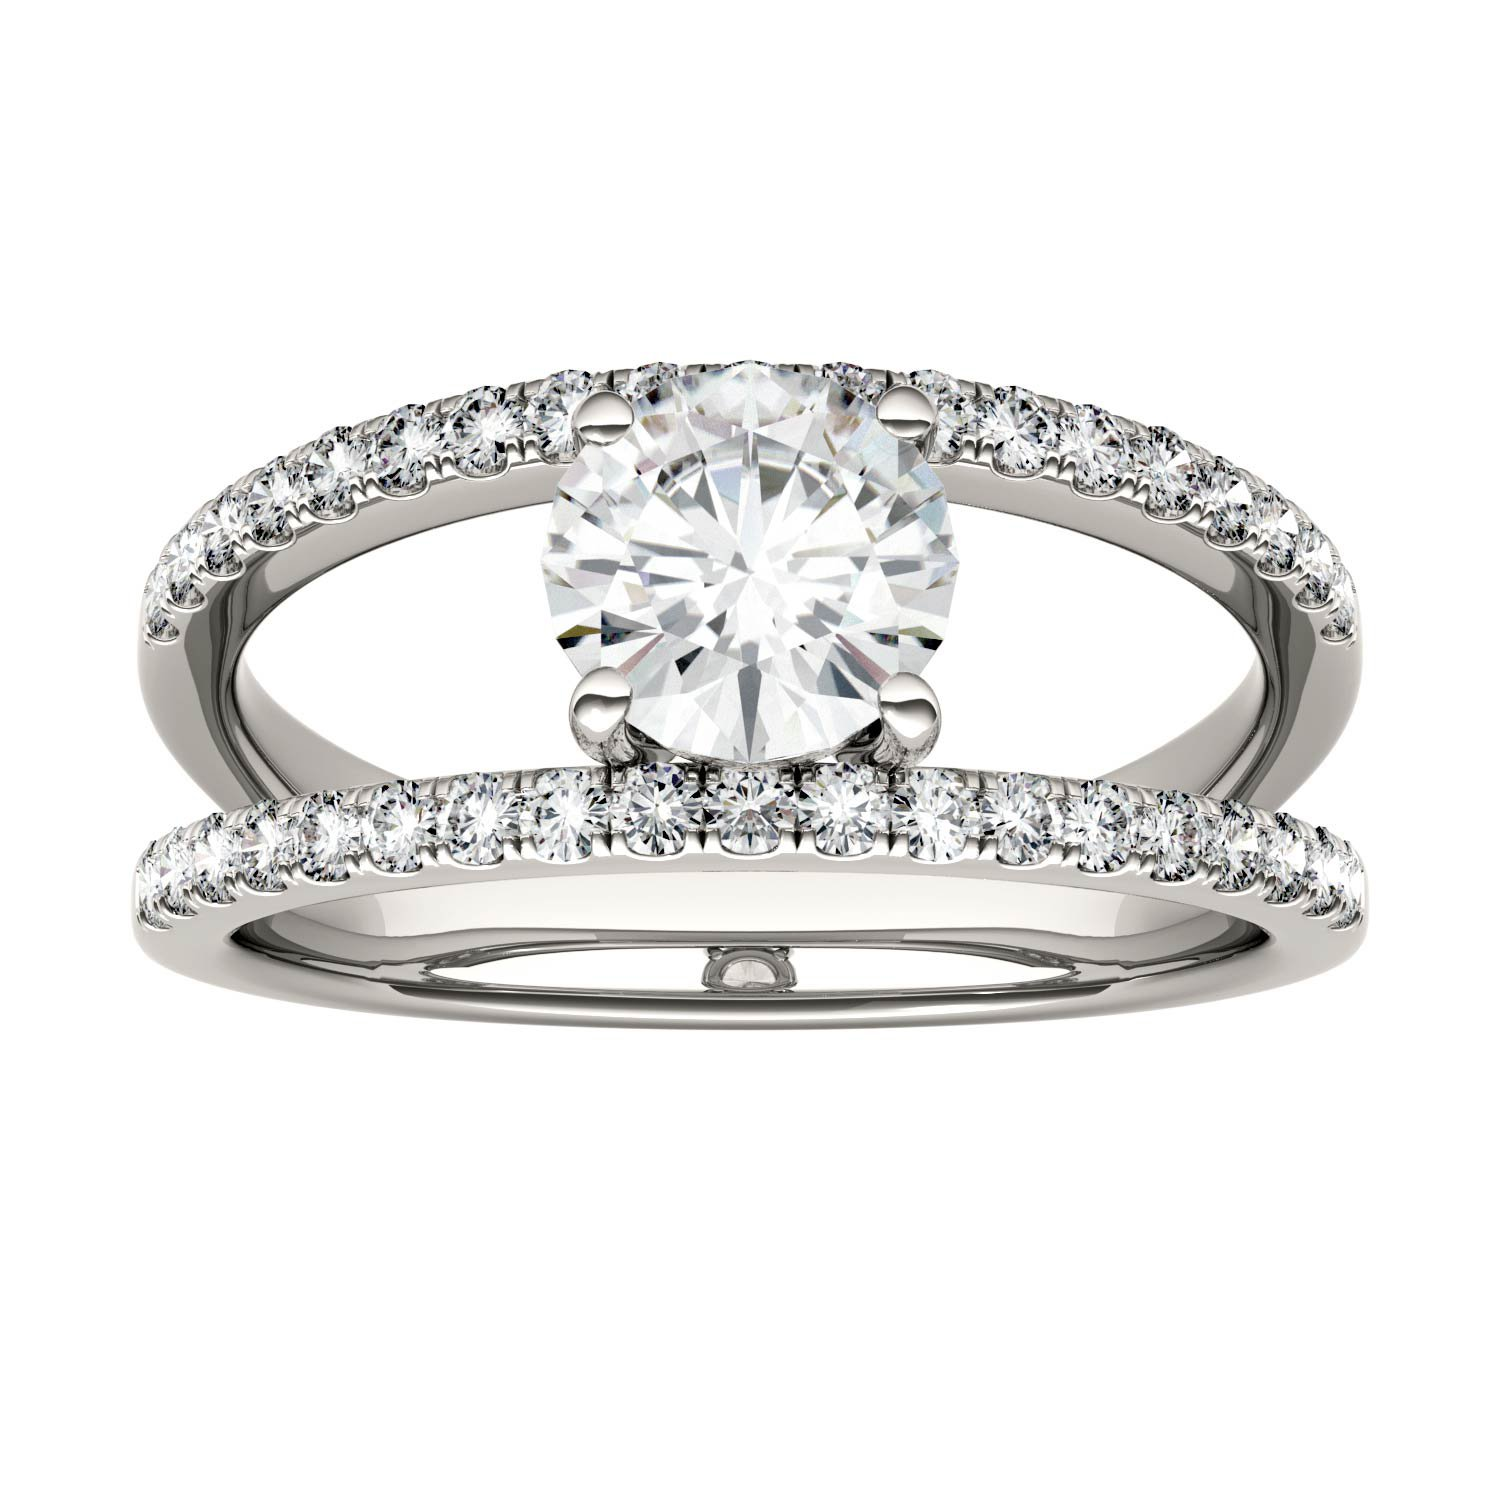 Forever Brilliant Round 6.0mm Moissanite Geometric Ring - size 9, 1.18cttw DEW By Charles & Colvard